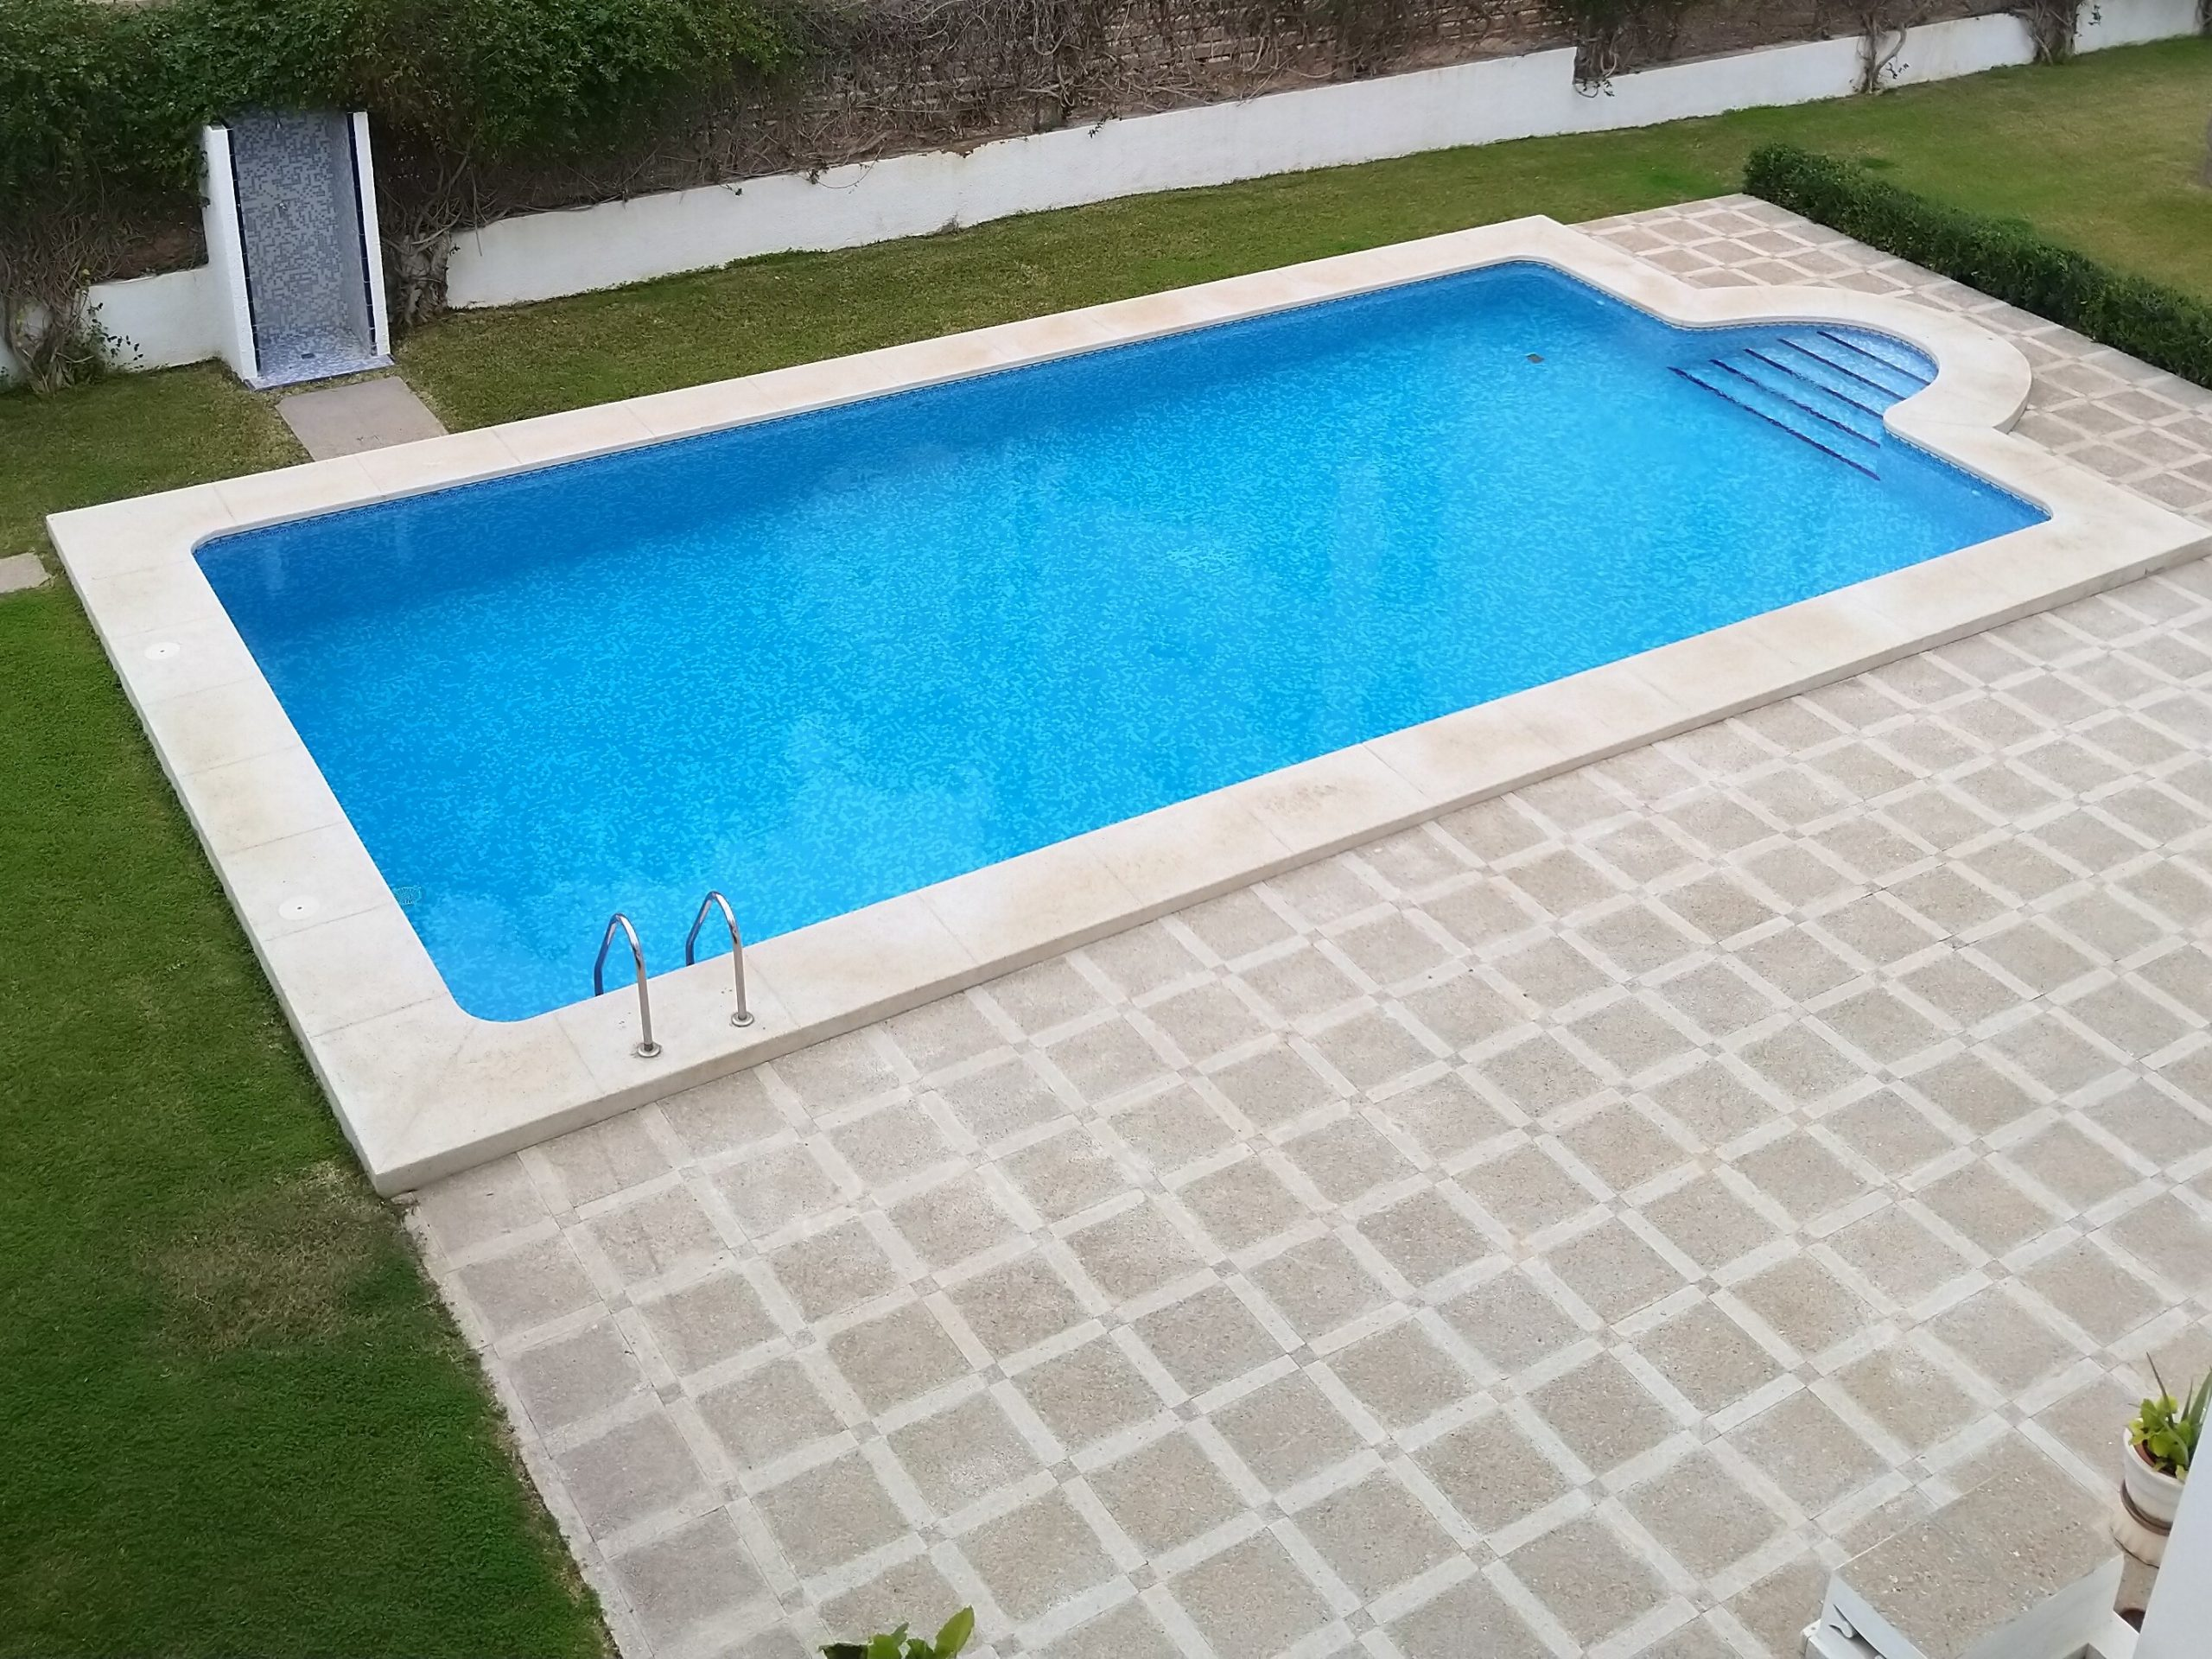 Selling your real estate with a nice outdoor sight as a swimming pool